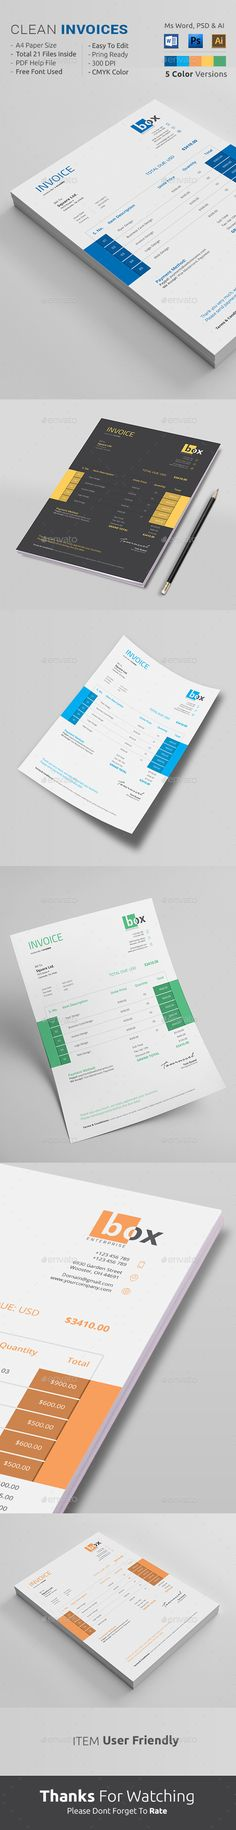 29 best Word Invoice Templates images on Pinterest   Invoice     easy to edit advertising agency invoice template Simple Invoice Template   AI   PSD  by Raymar Lobaton  via Behance